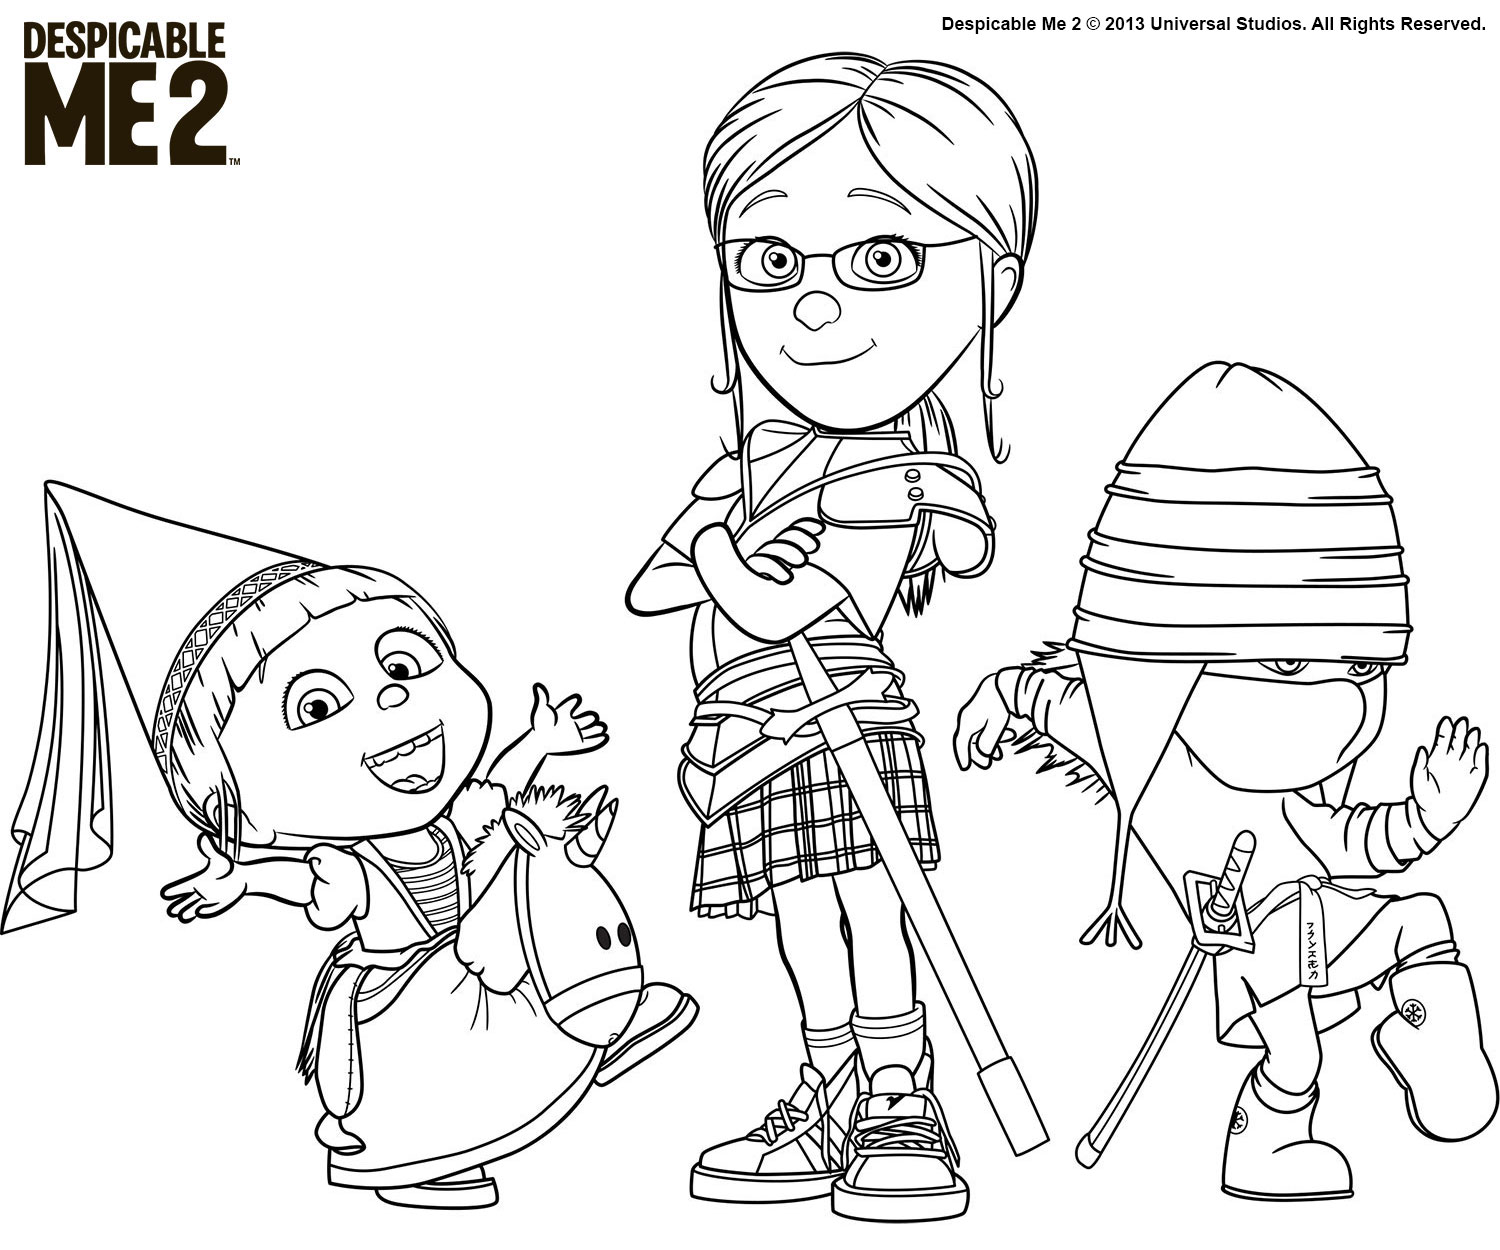 despicable me two coloring pages - photo#44